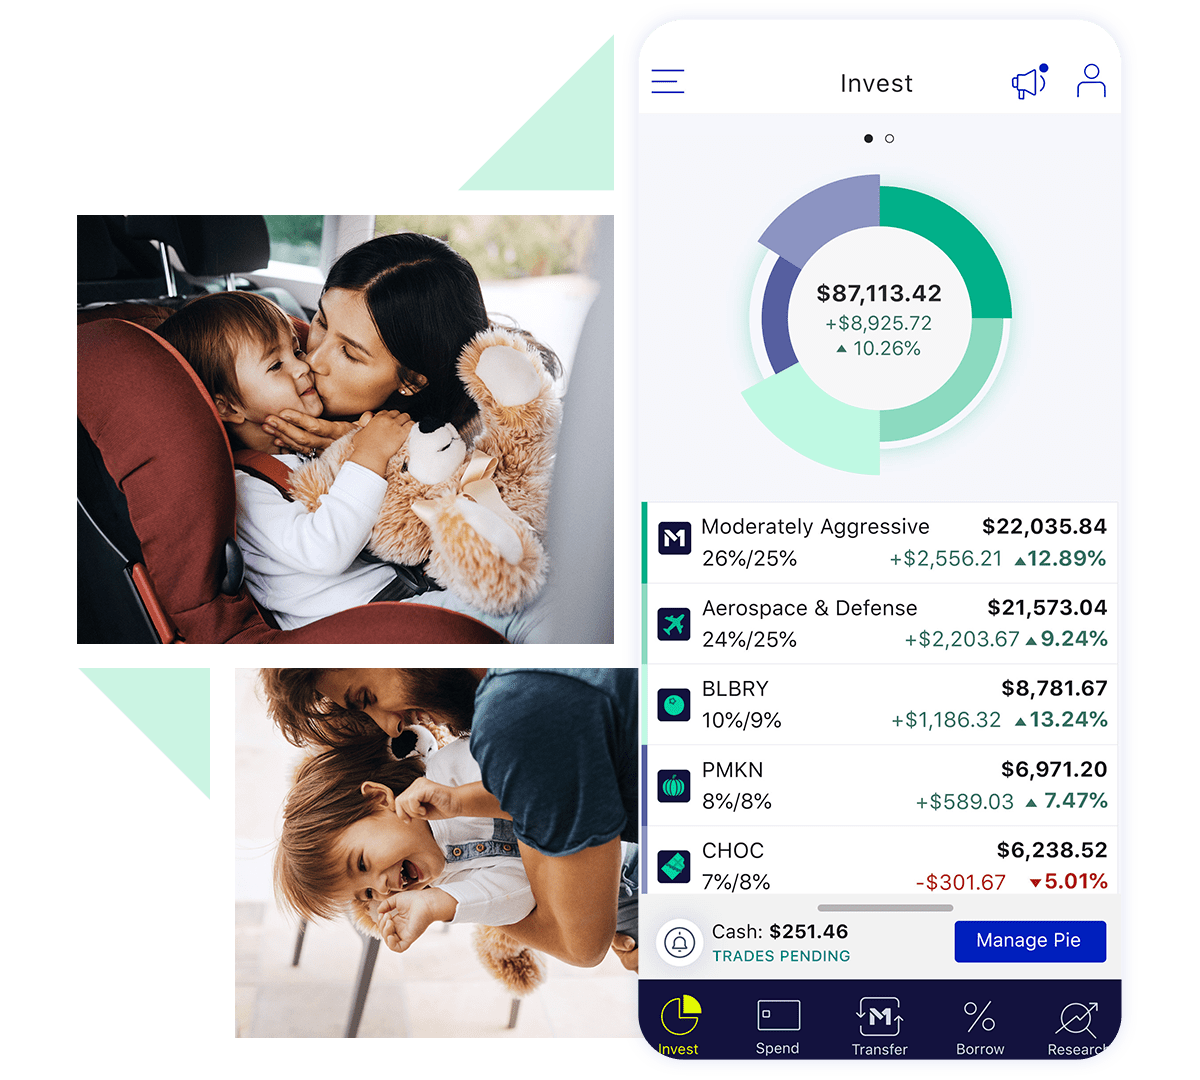 M1 invest tab with images of parents showing affection towards their children